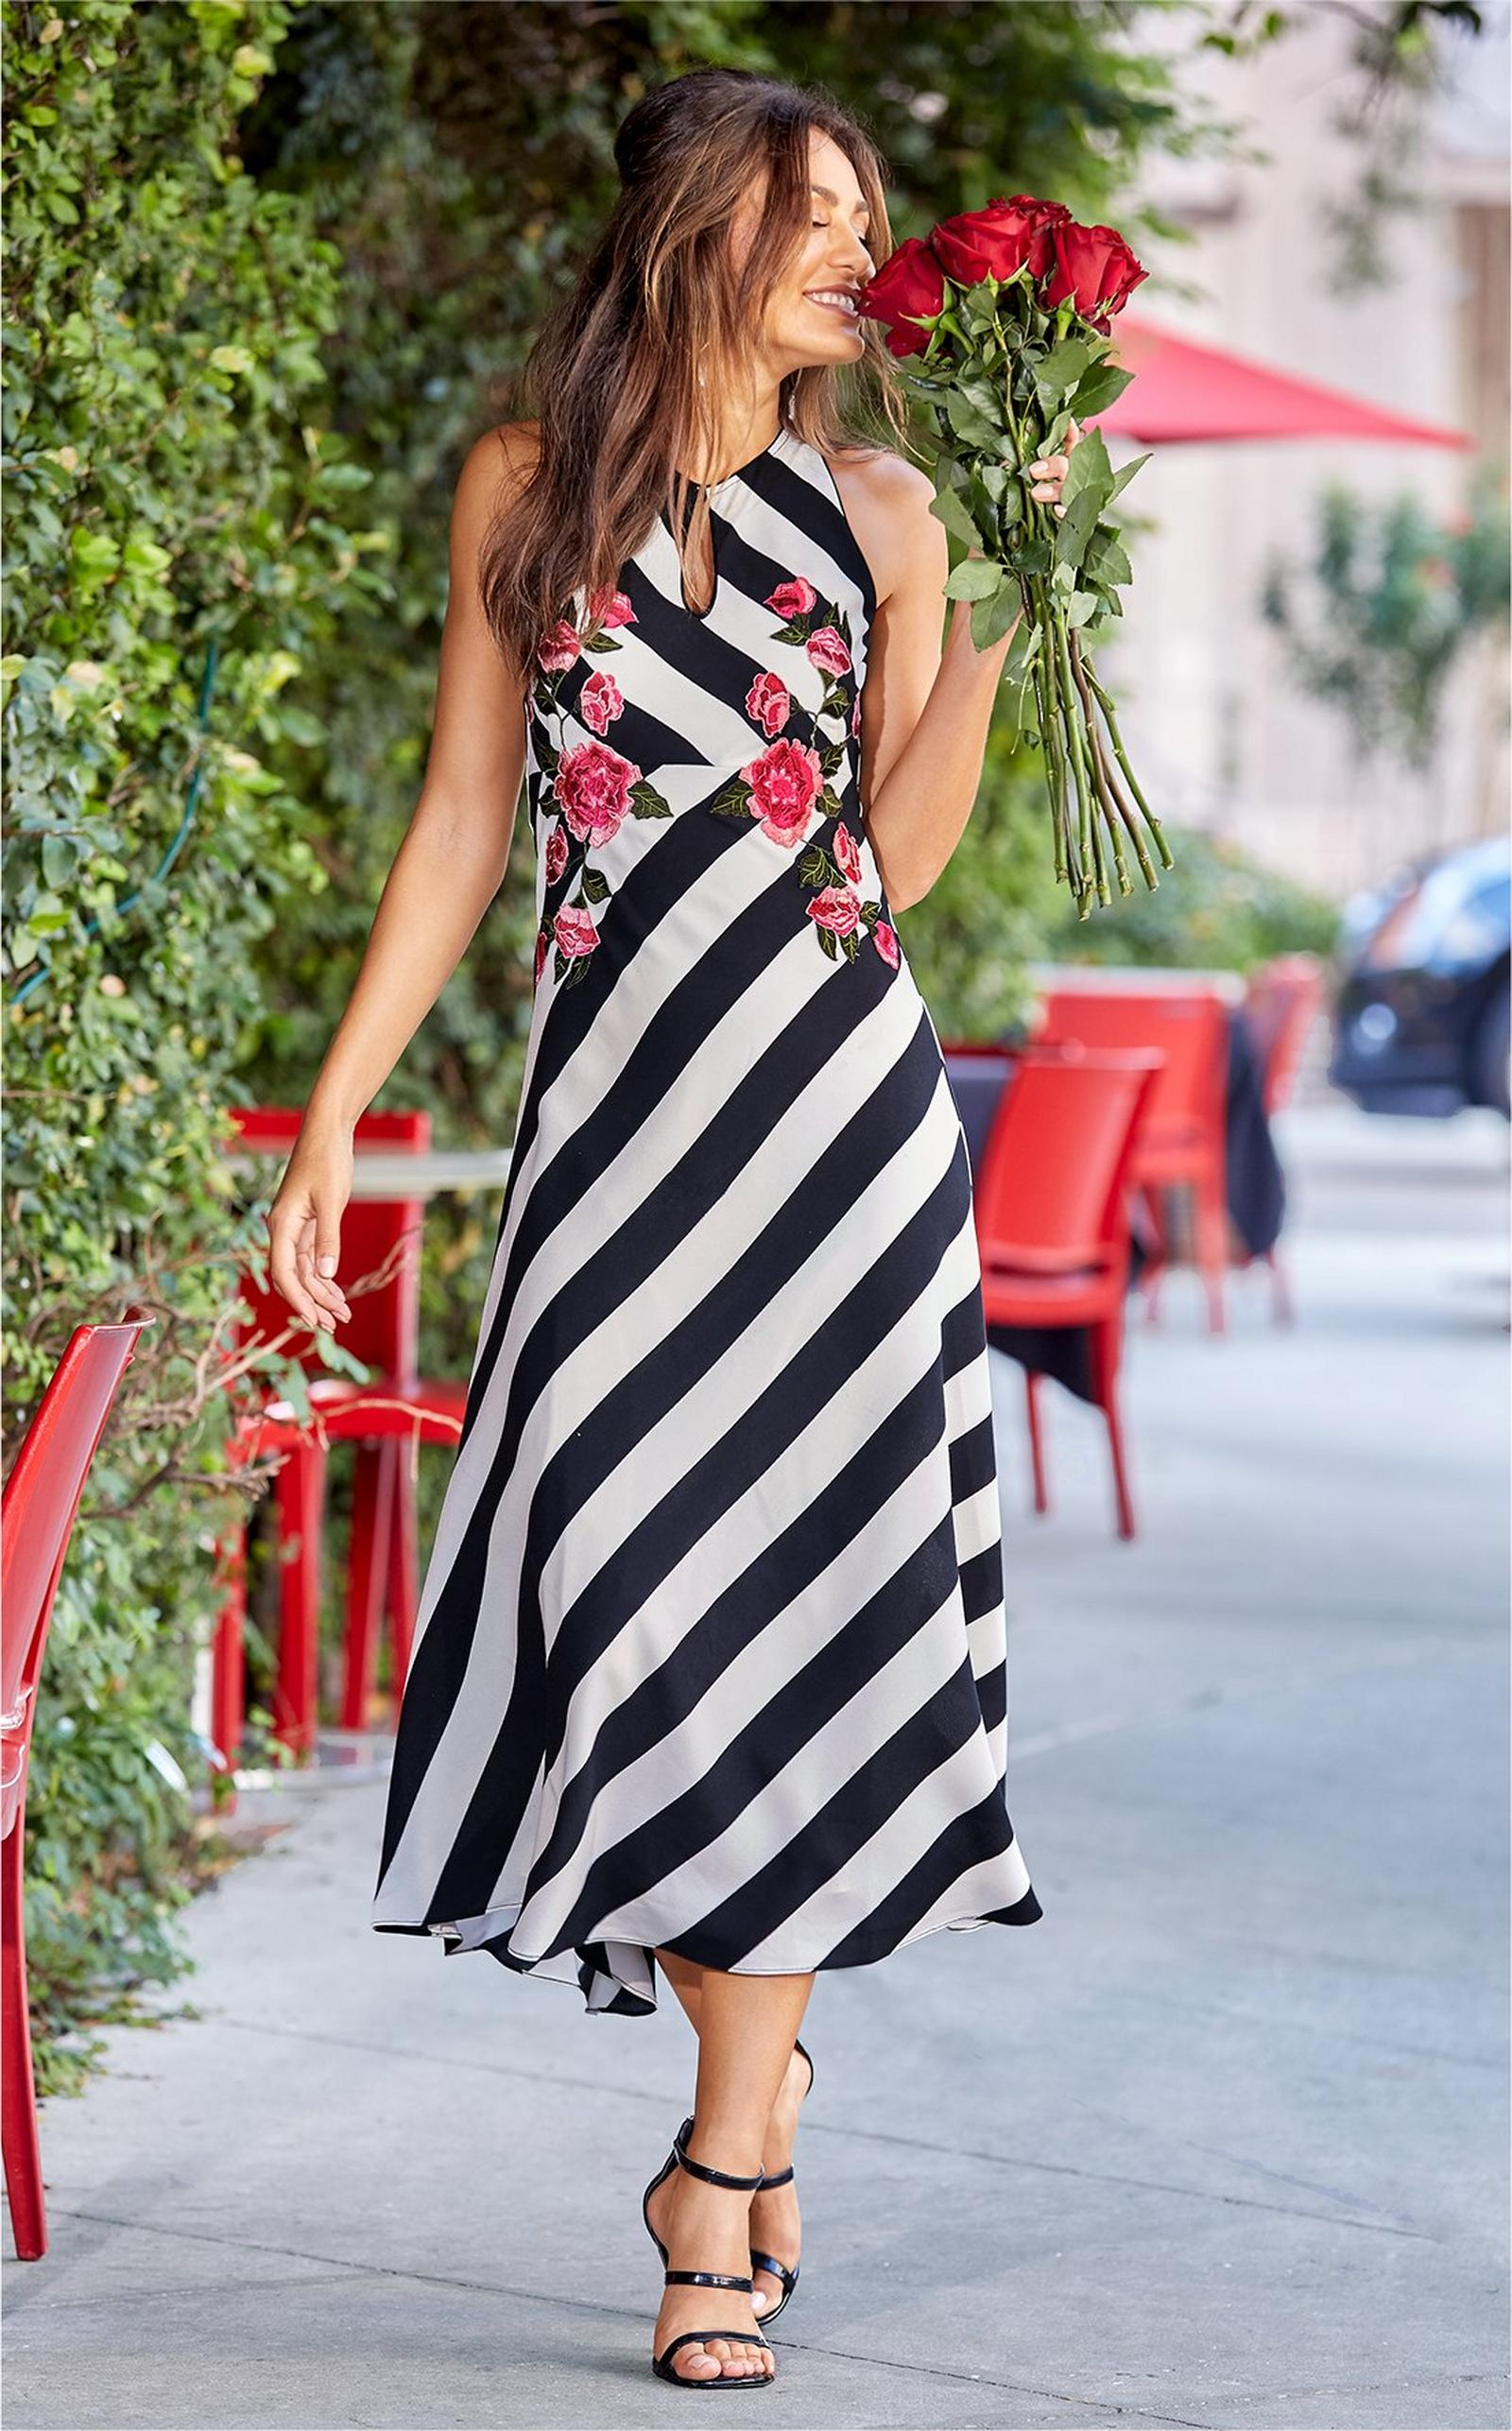 model wearing black and white striped midi dress with pops of pink flowers.